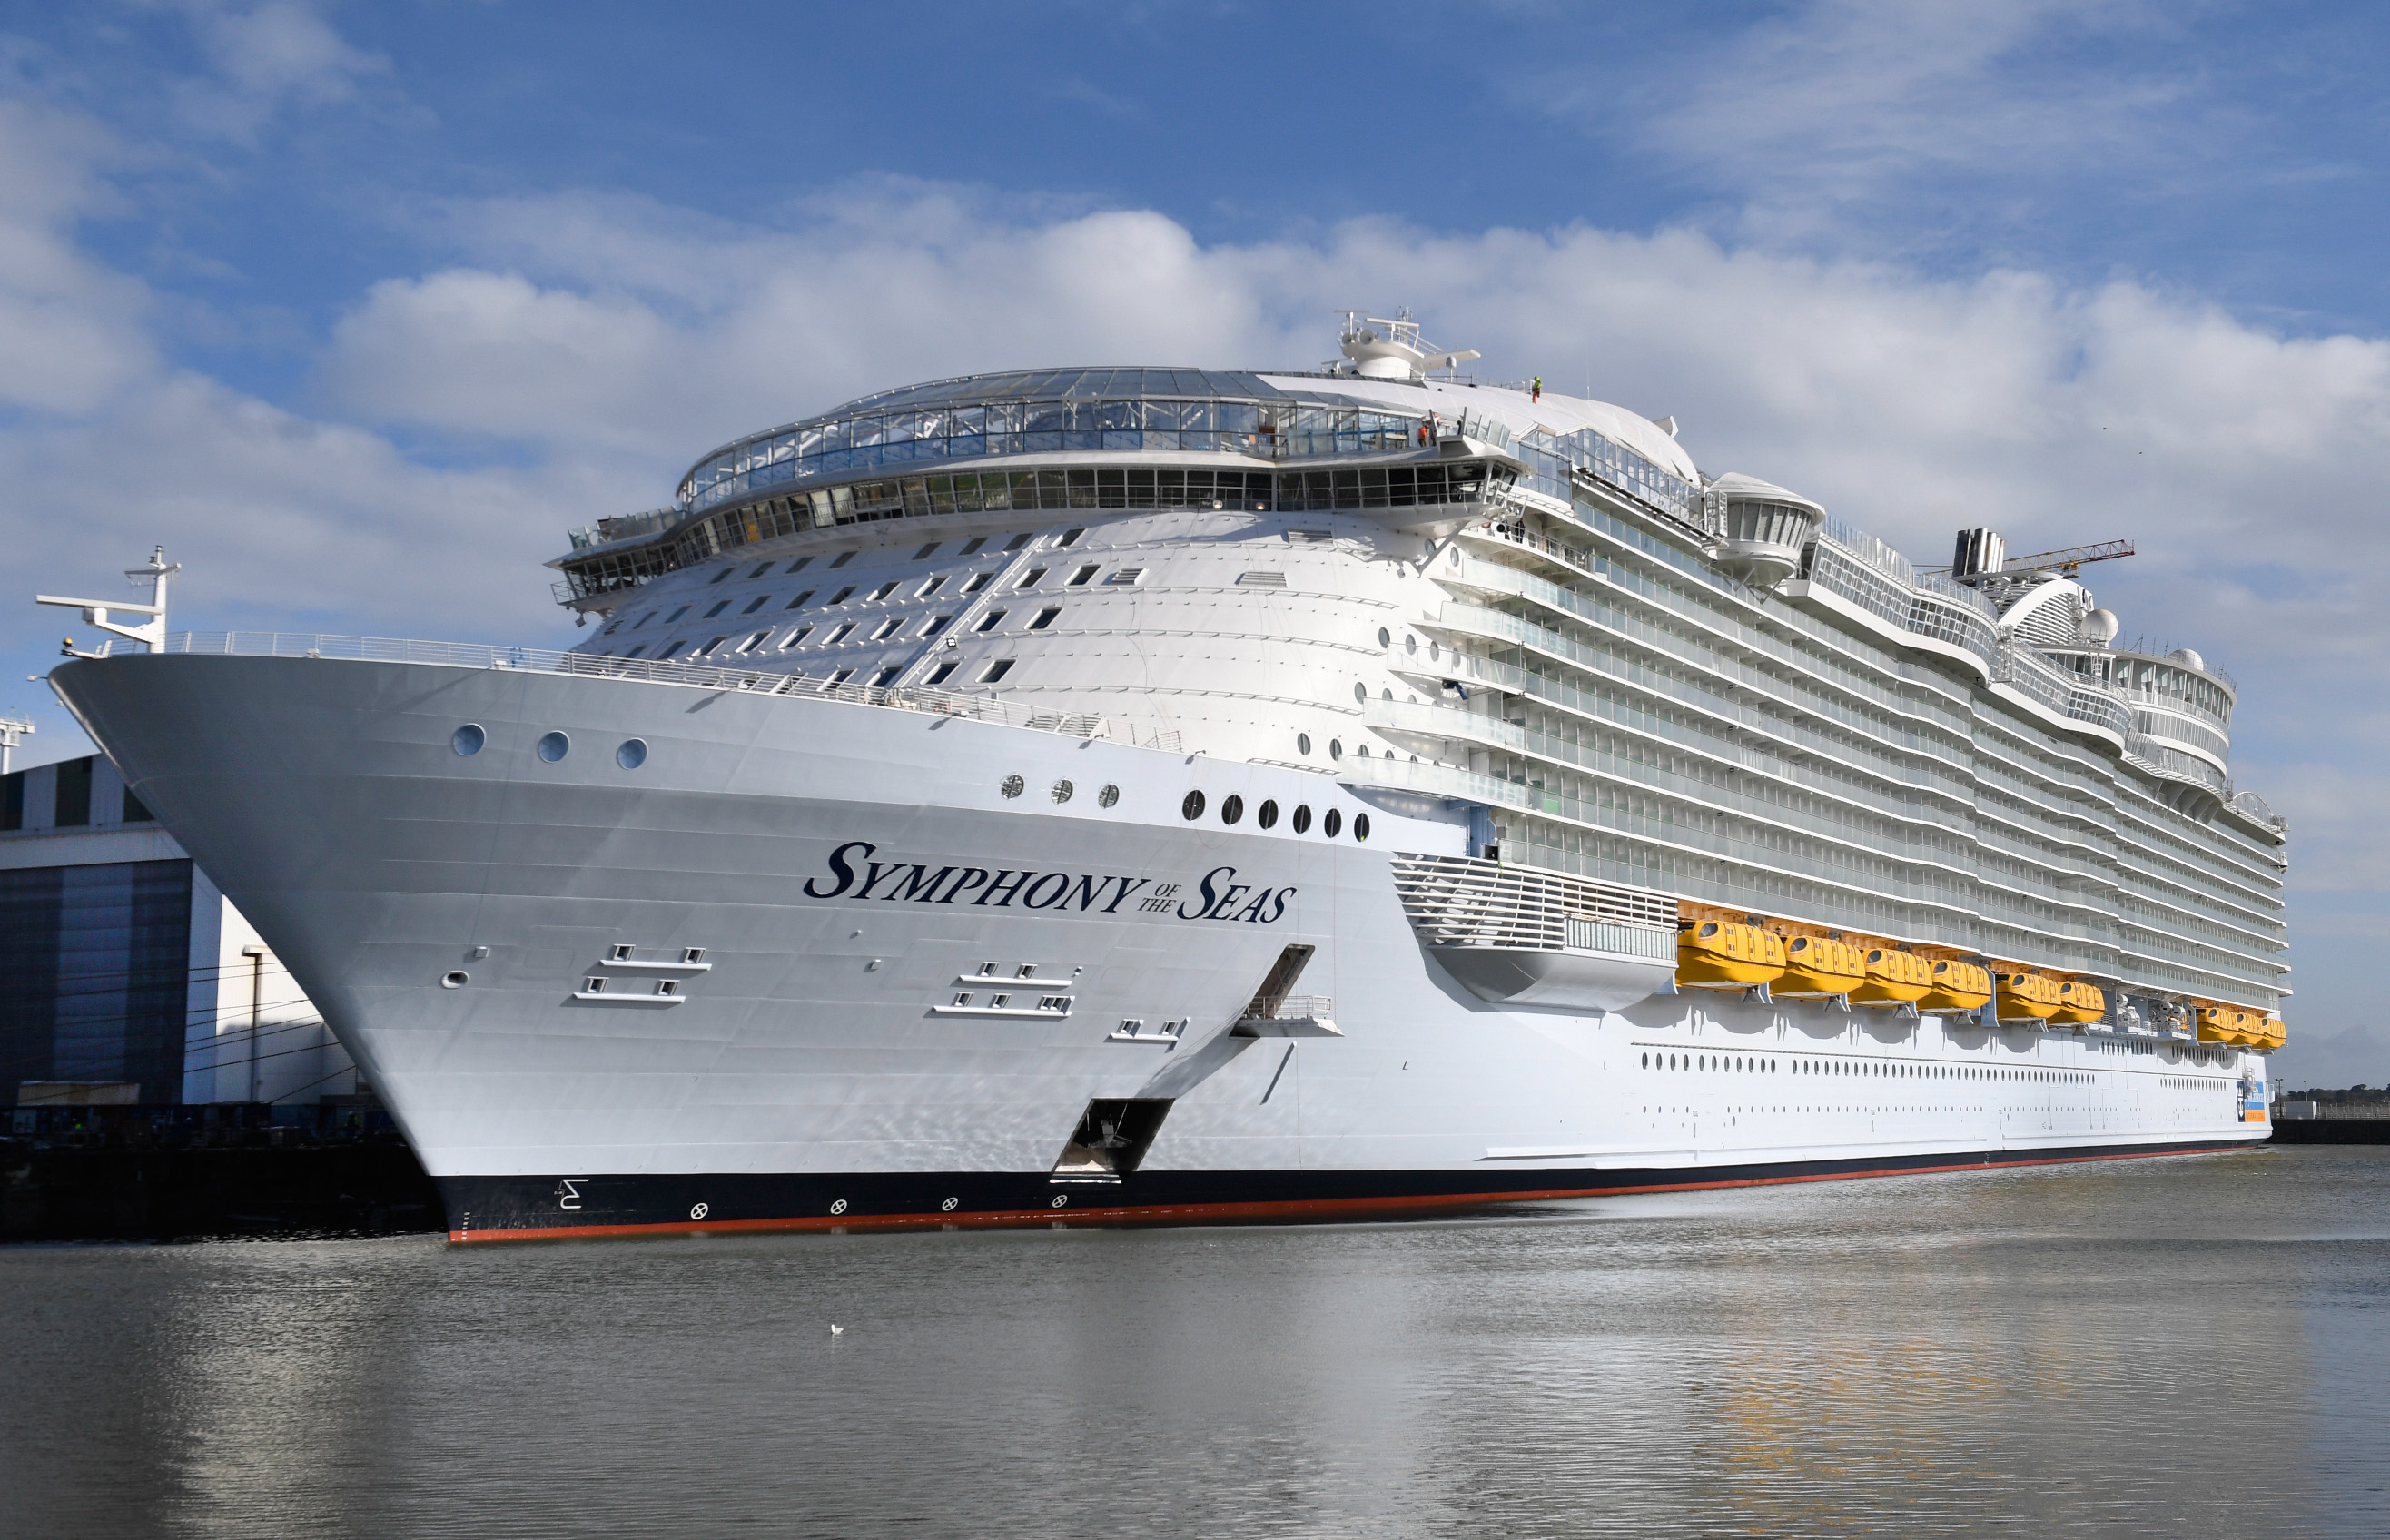 Slide 2 of 31: US shipowner Royal Caribbeans new Oasis-class cruise ship, Symphony of the Seas, the largest passenger ship ever to be constructed by gross tonnage and built by French shipyard STX, is pictured on February 13, 2018 in the port of Saint-Nazaire, western France. STX, whose origins date to 1861, has several cruise ships on order between now and 2026 for its two main clients, MSC Cruises and Royal Caribbean. Italian shipbuilding company Fincantieri announced on Februay 2, 2018 it had reached an agreement with France to buy 50 percent of the French shipyard STX. Symphony of the Seas is to be delivered to the Royal Caribbean by March, and will be able to accommodate 5,518 passengers at double occupancy up to a maximum capacity of 6,680 passengers, as well as a 2,200-person crew. / AFP PHOTO / Fred TANNEAU        (Photo credit should read FRED TANNEAU/AFP/Getty Images)